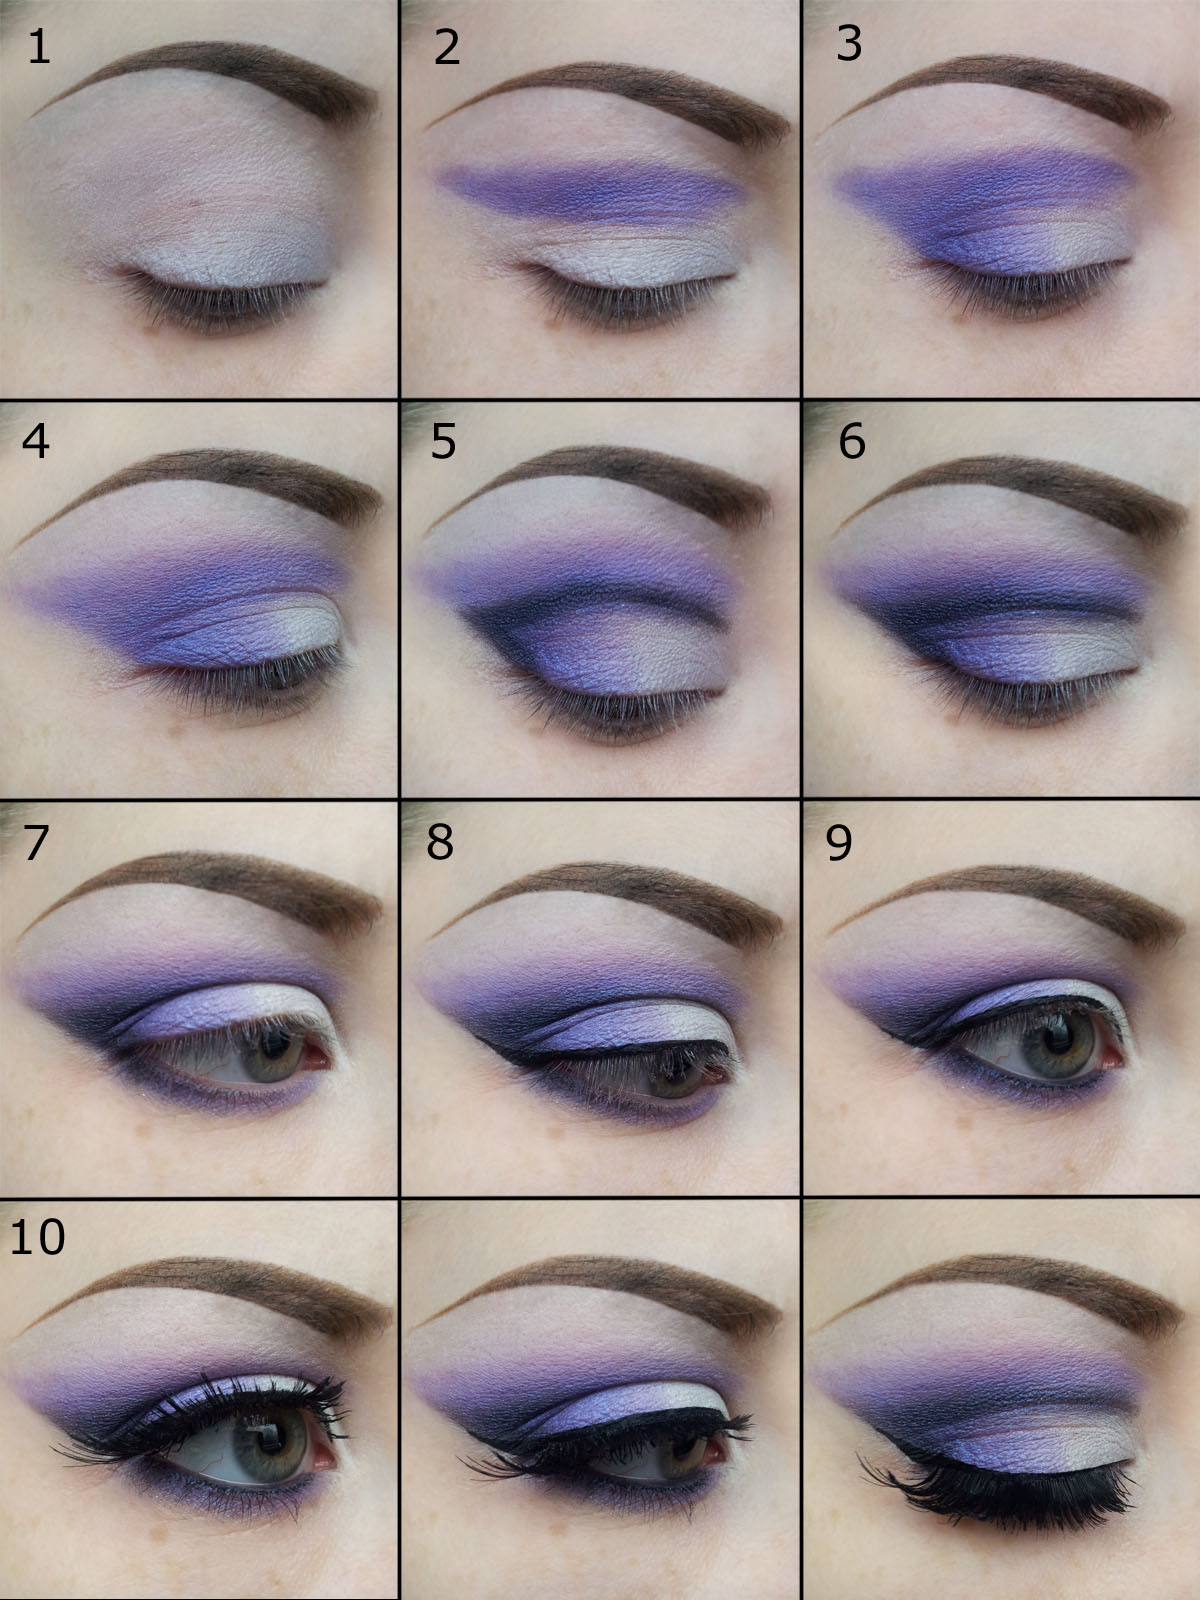 Purple Eyeshadow Tutorial: Make It All Up: A Purple Look Tutorial